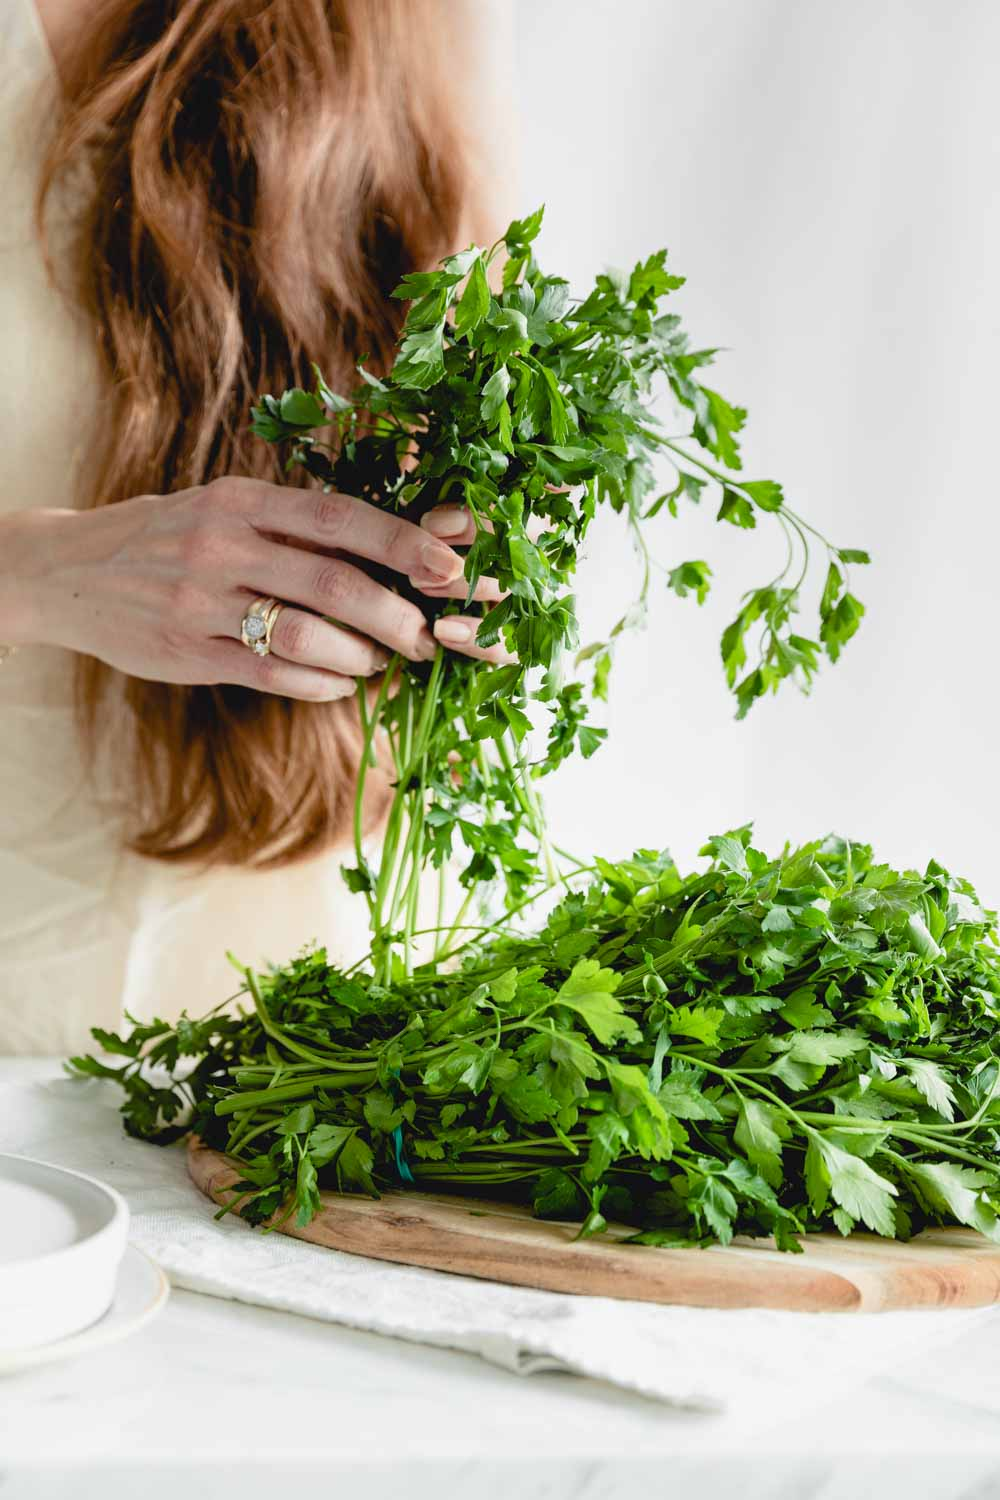 hands holding a bunch of parsley on a white backdrop with more herbs on a wooden cutting board